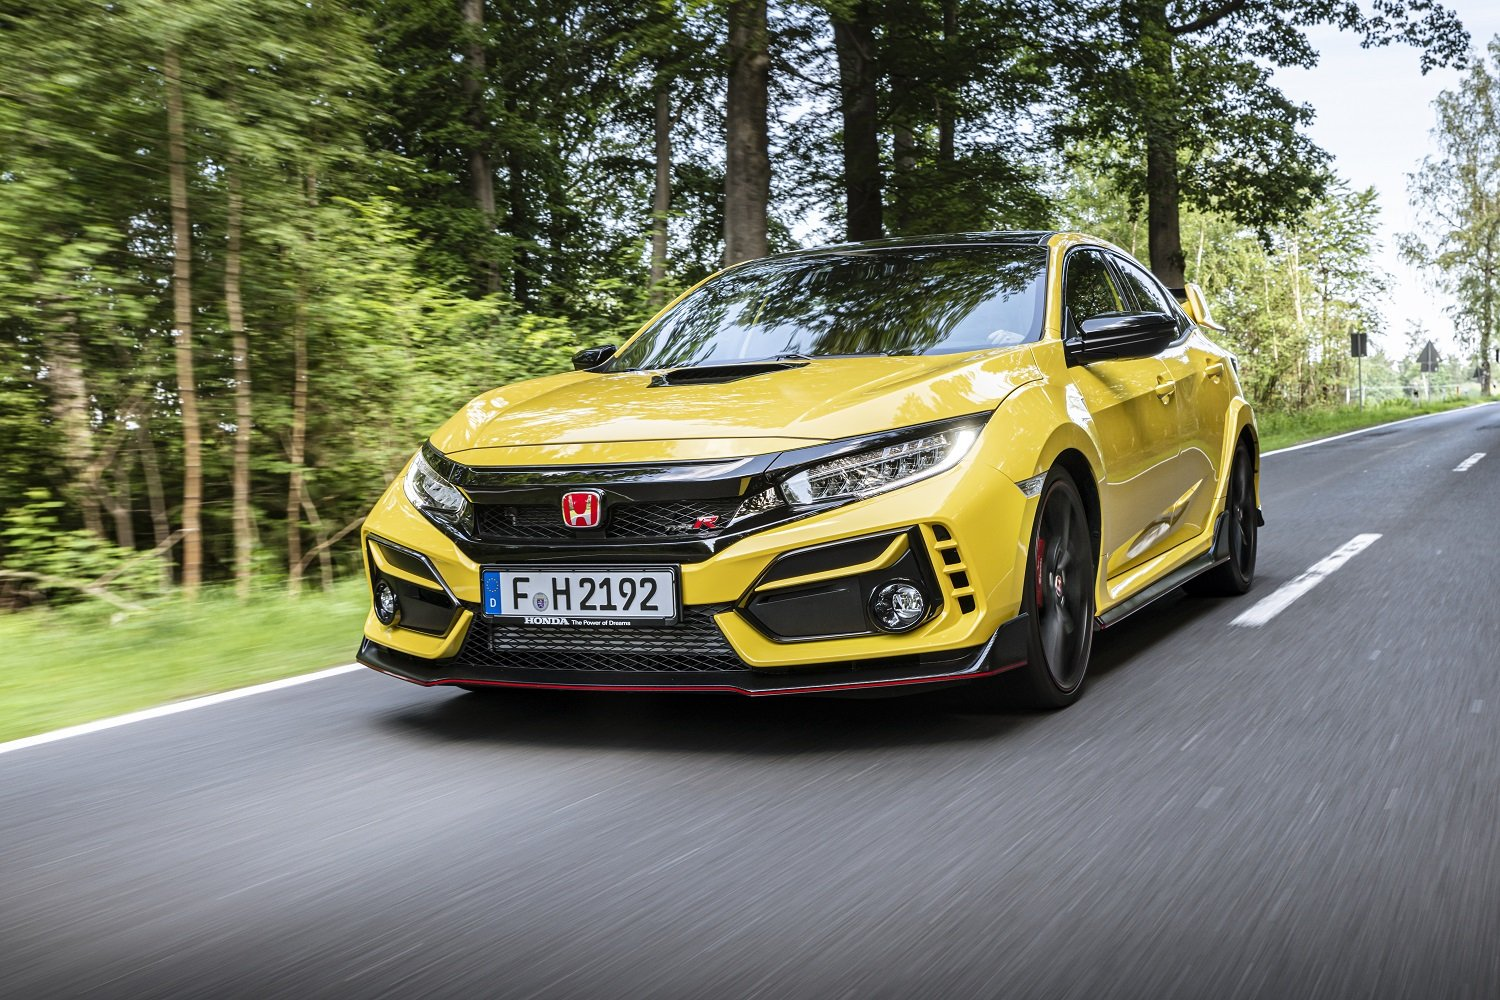 Lottery To Decide 2021 Honda Civic Type R Limited Edition Ownership